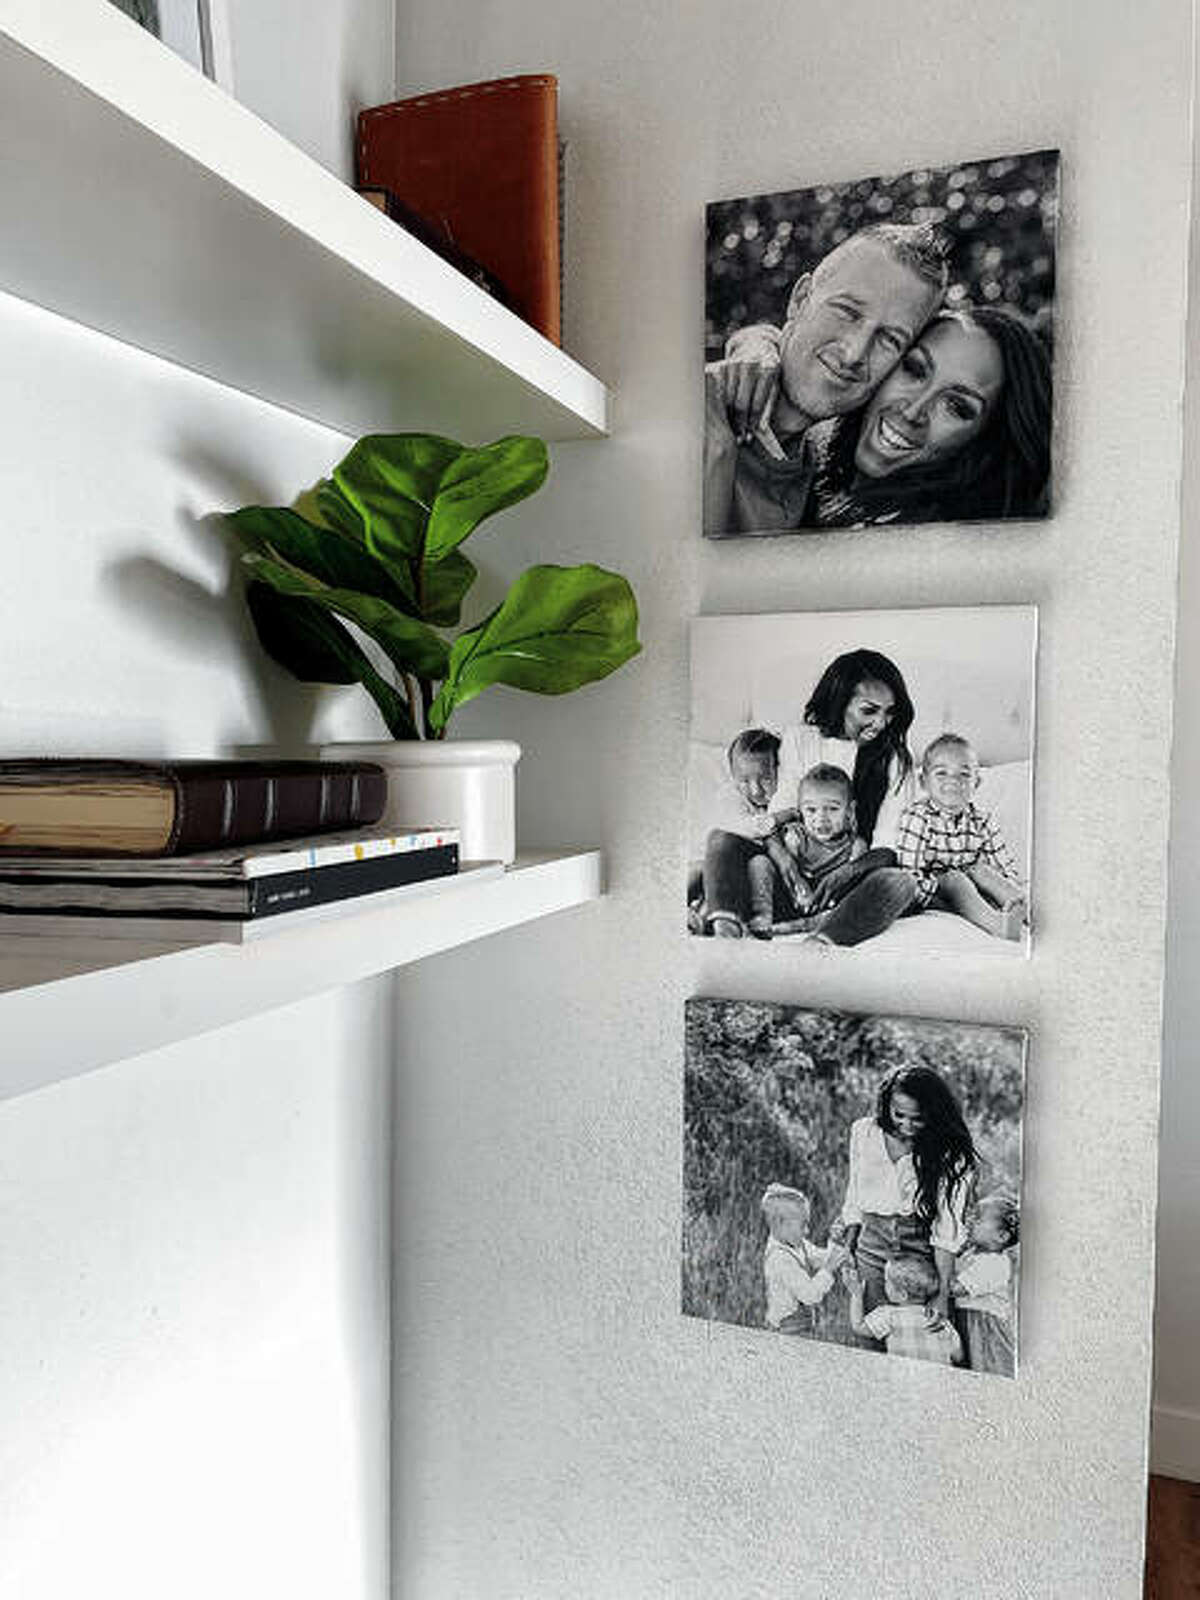 Chatbooks lets you connect your Instagram or camera roll to create beautiful photo books, prints, cards - or these lovely wall tiles. Images are printed on square canvas frames equipped with moveable adhesive backing, perfect for renters and owners.